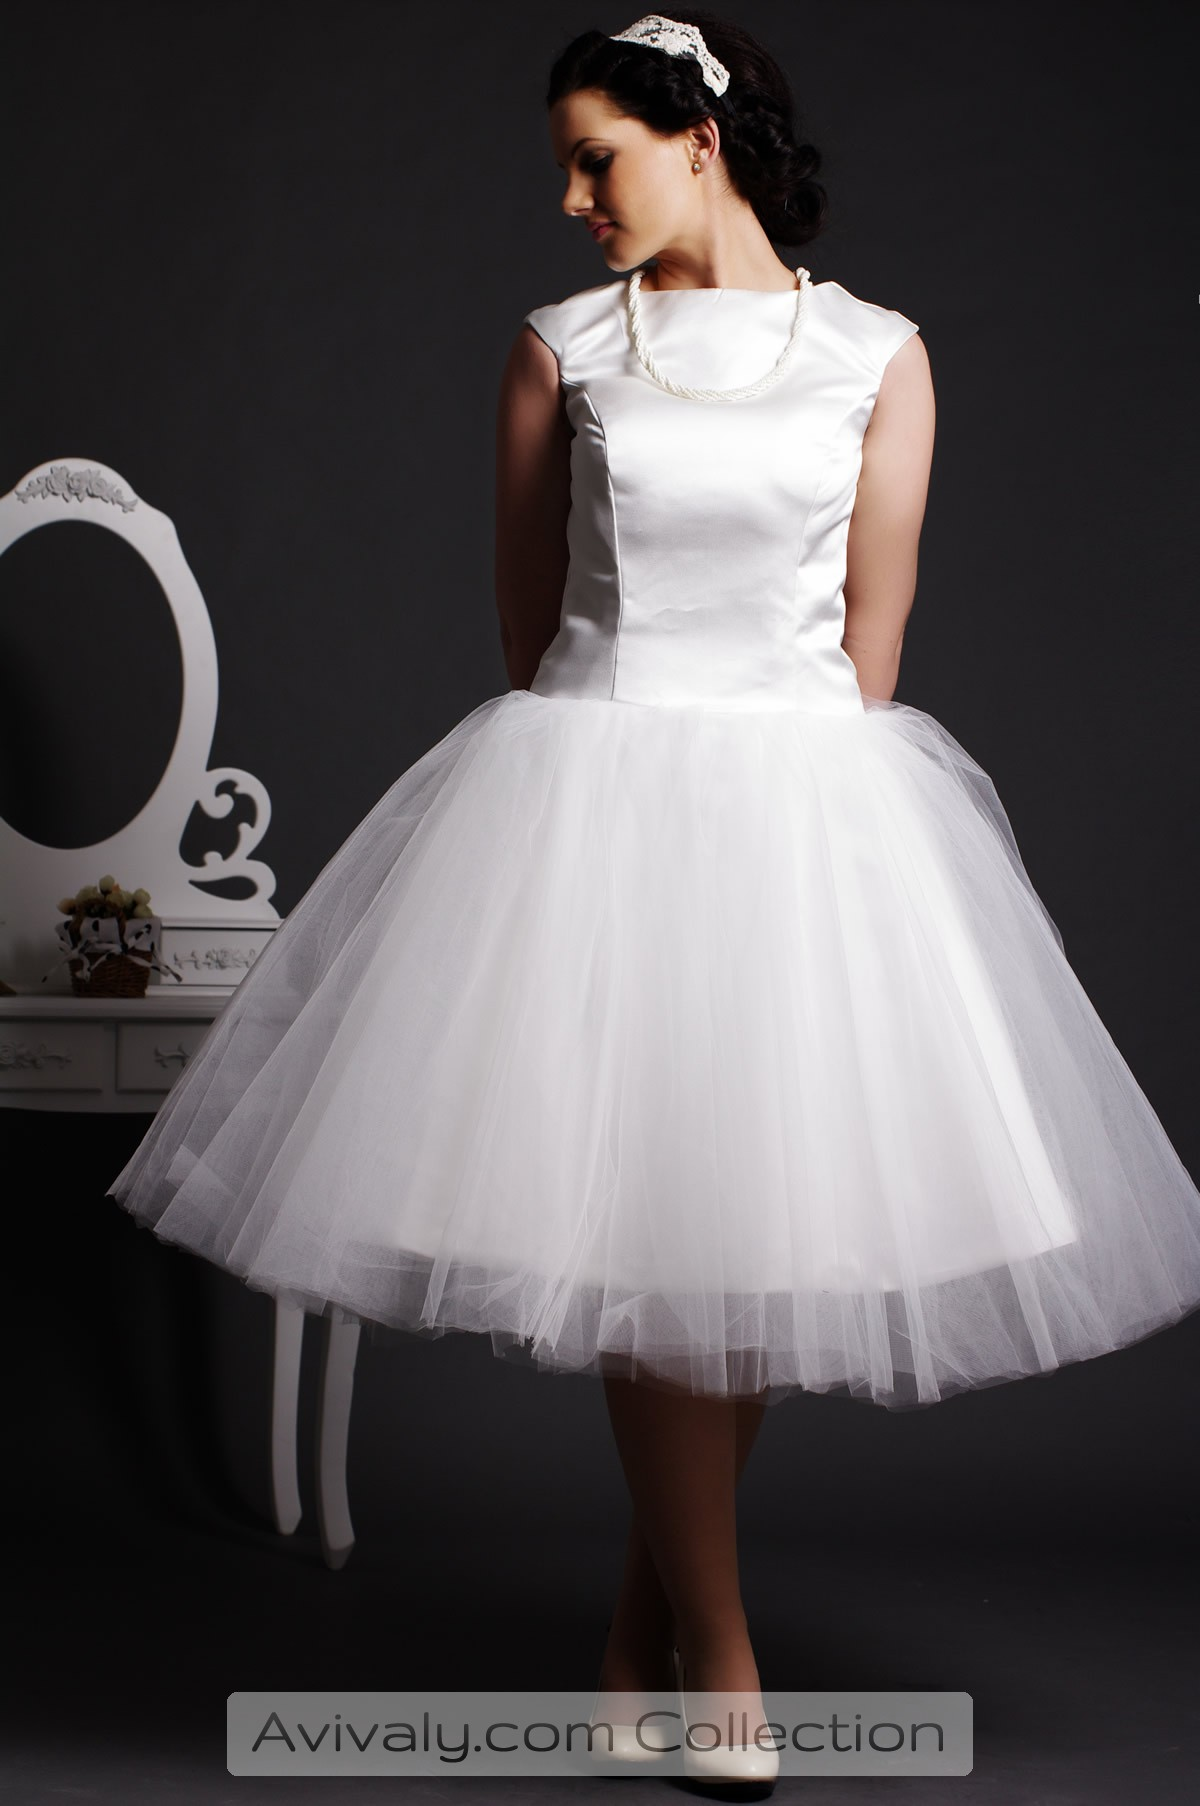 Musica - Satin Bodice with Layered Tulle Ball Gown Skirt